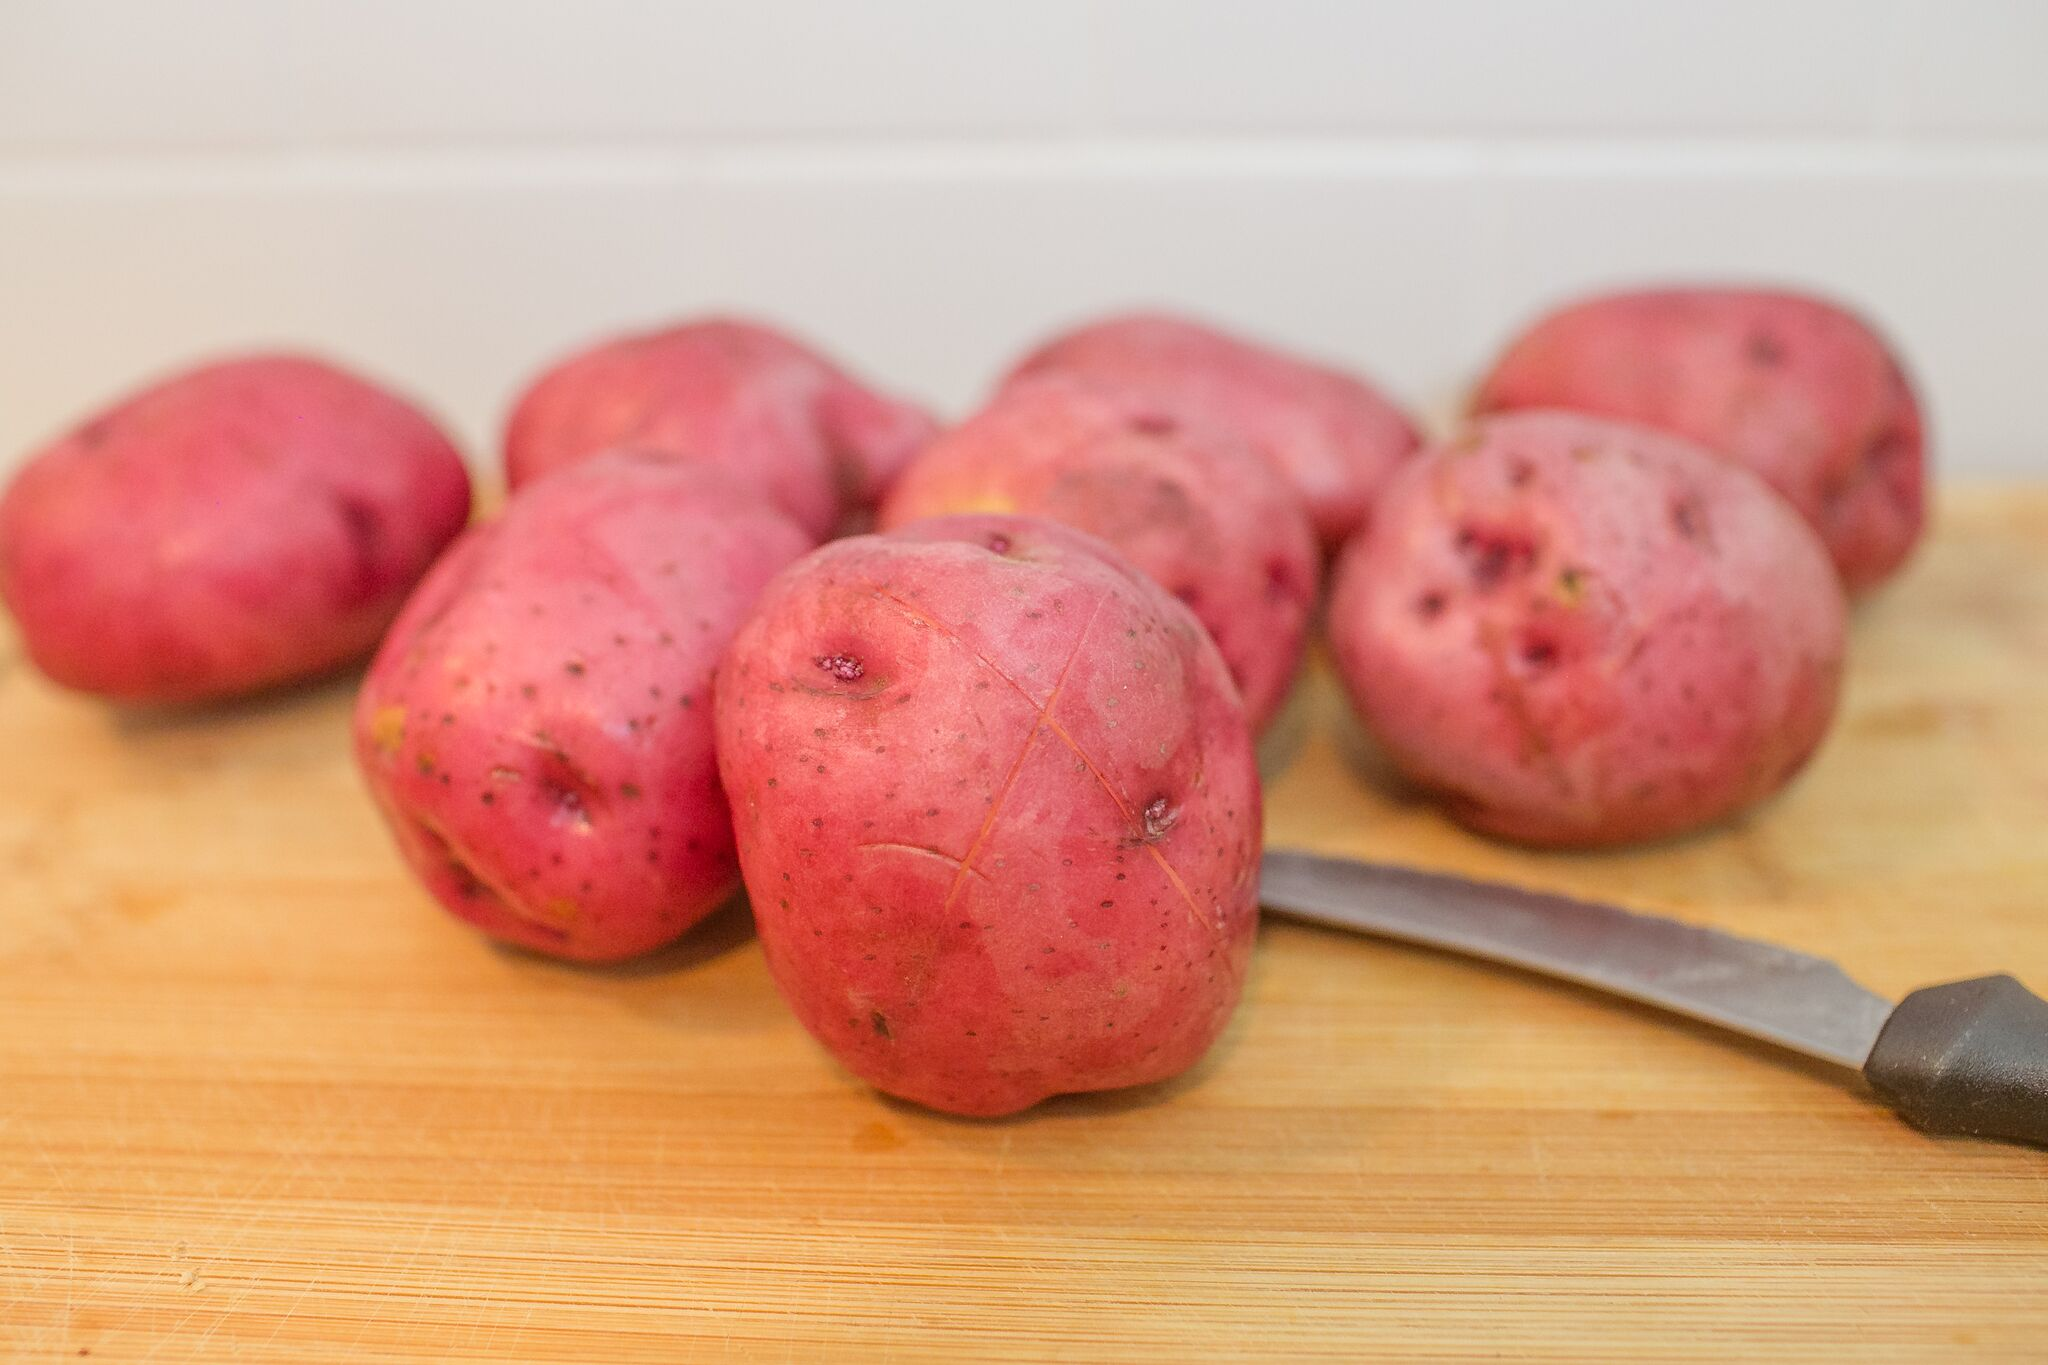 Wash the potatoes well and cut a small X into each one.